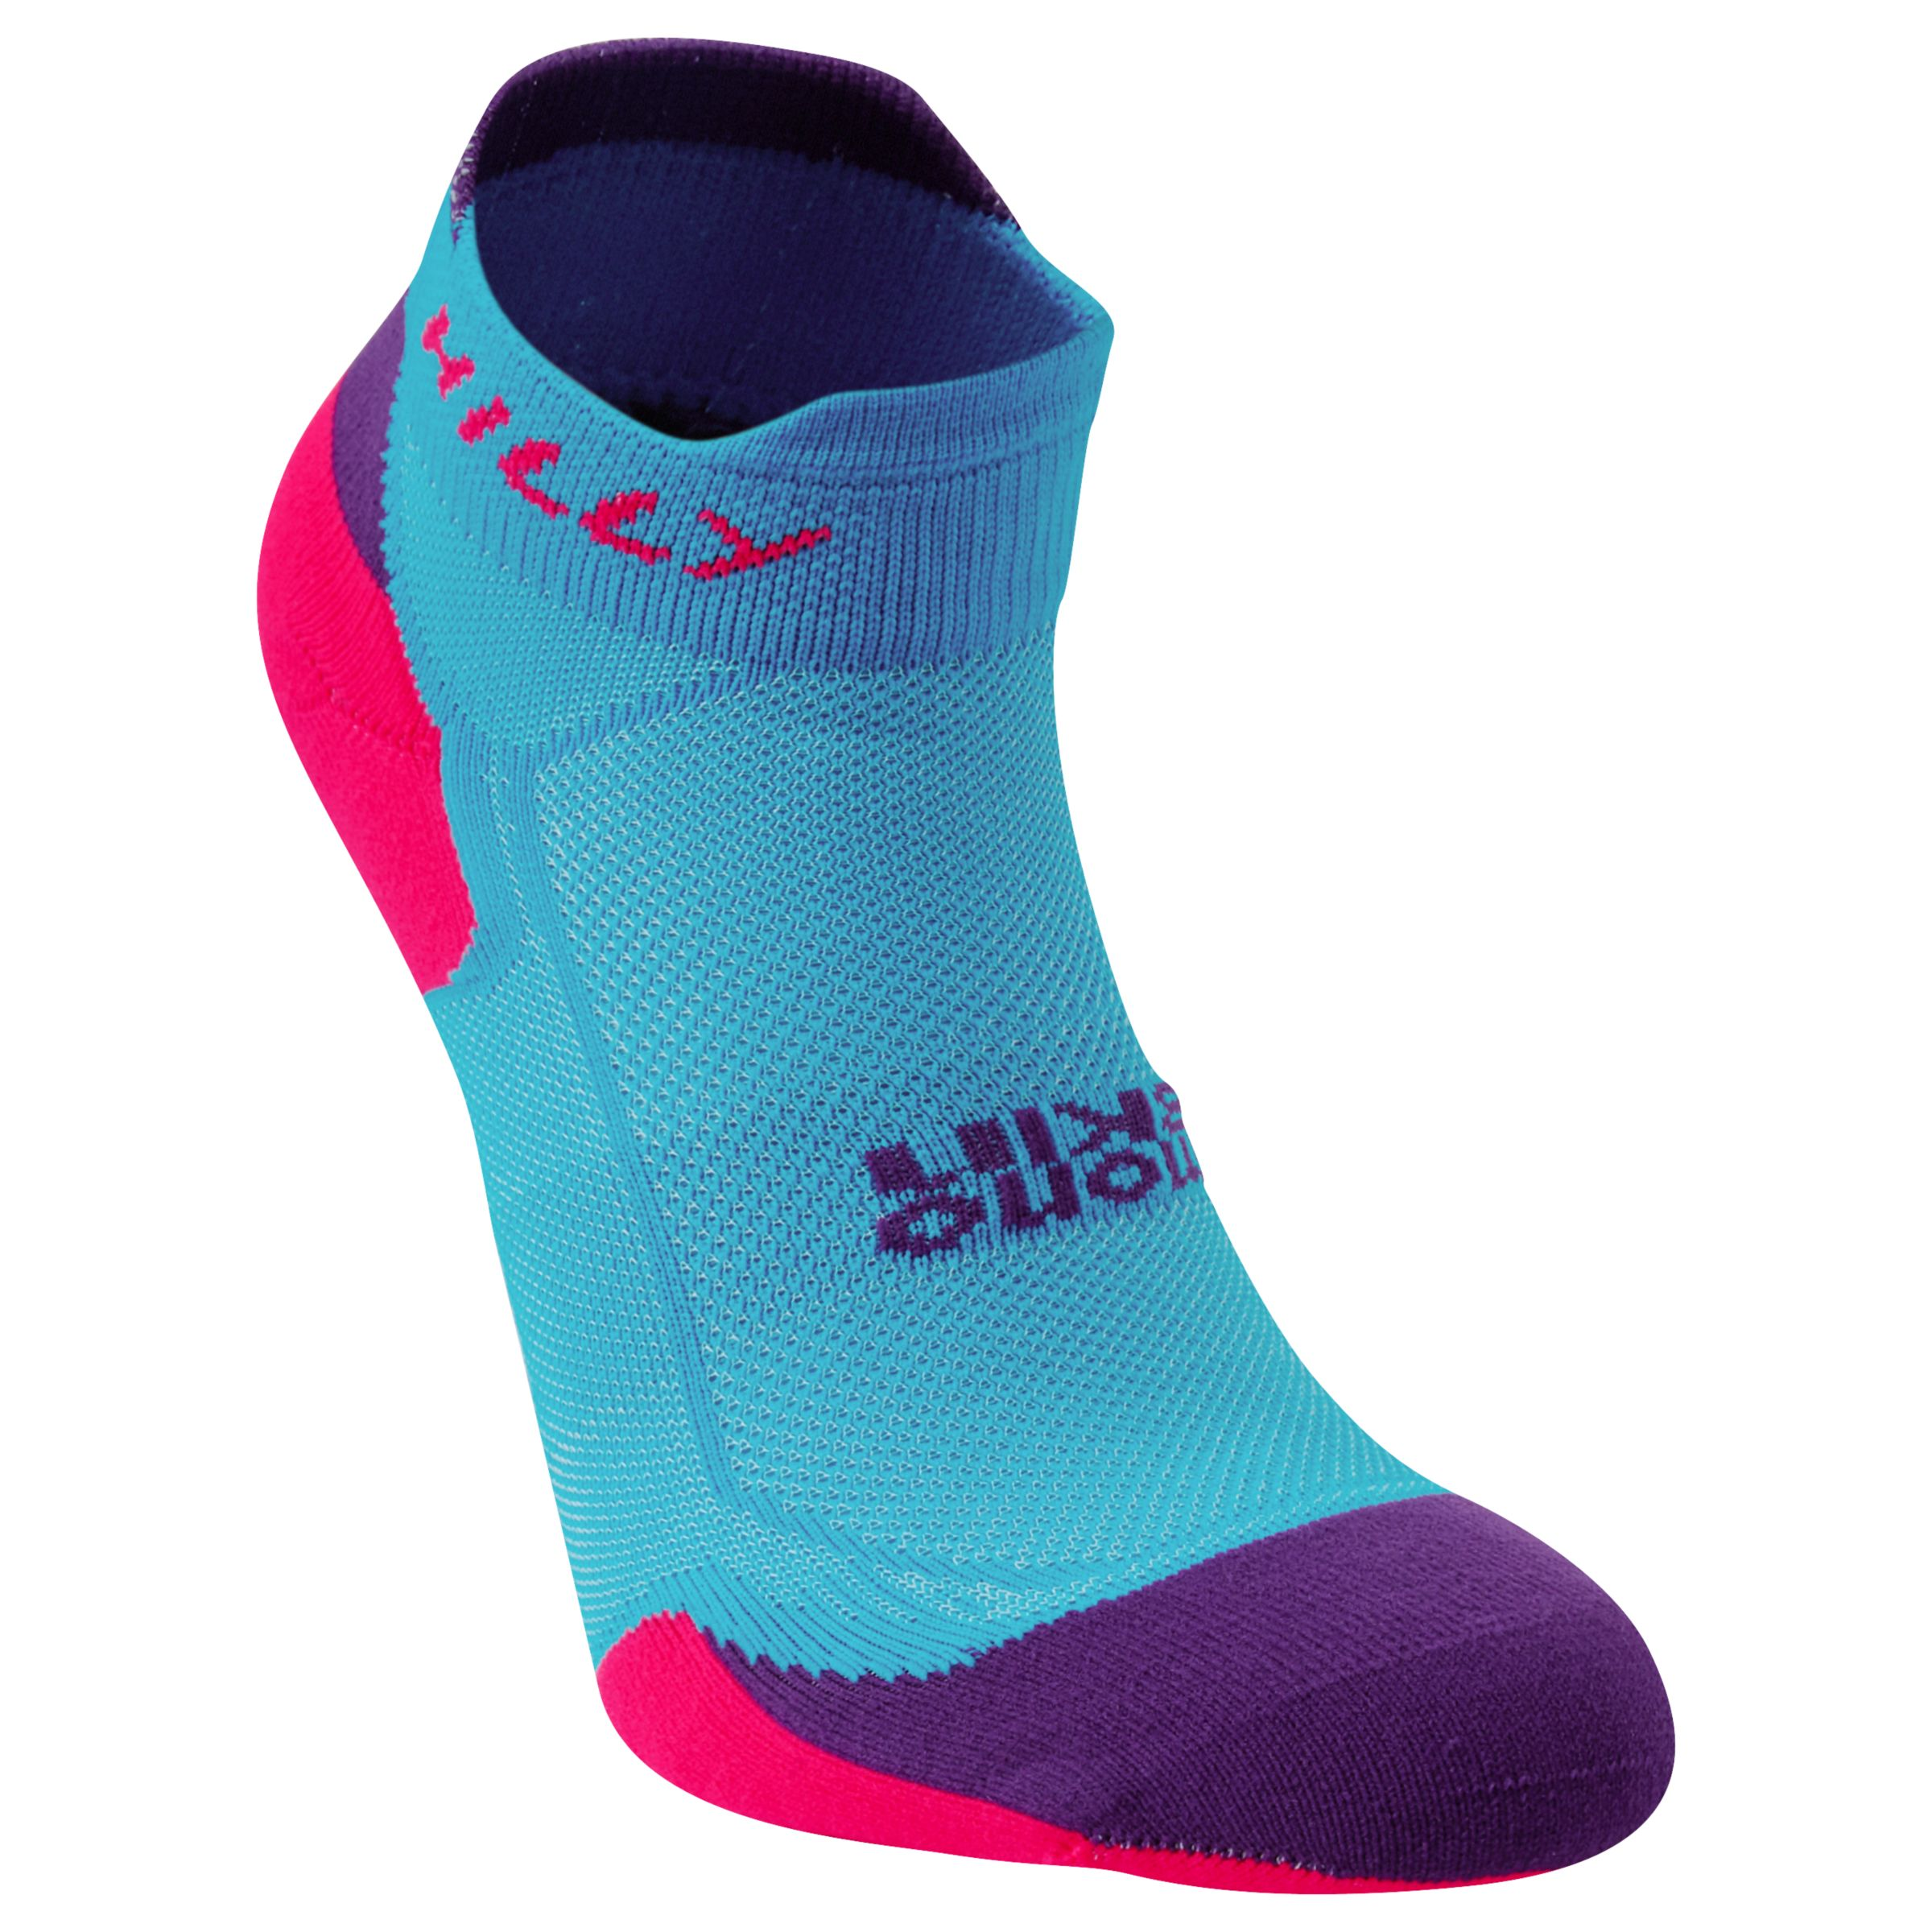 Hilly Hilly Lite Cushion Mono Skin Socklets, Blue/Purple